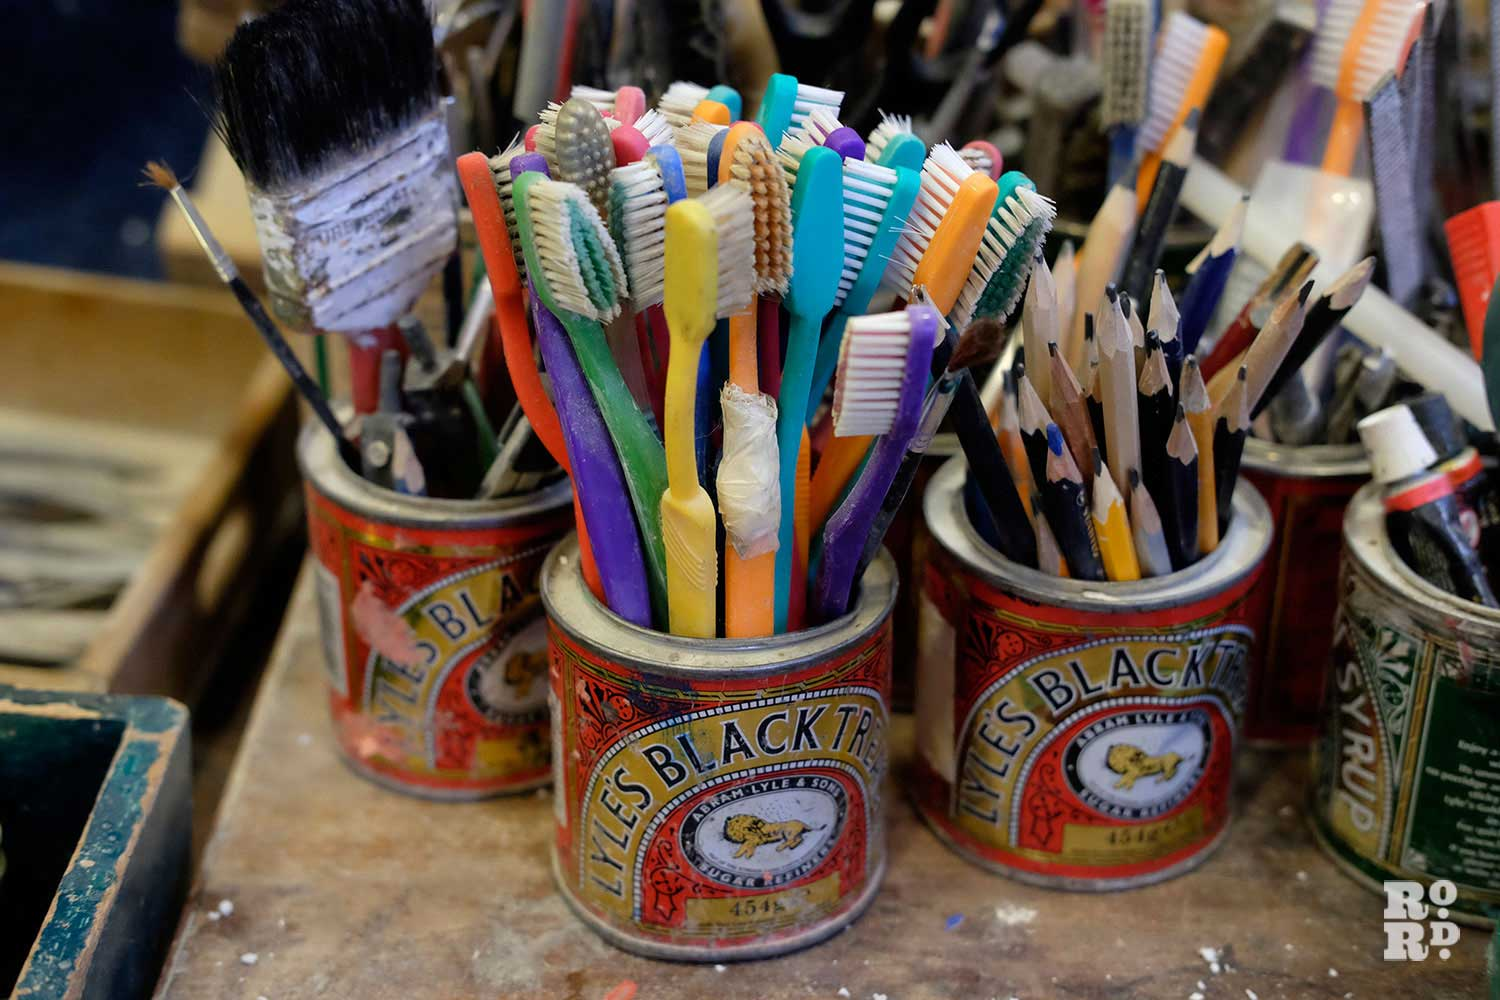 Toothbrushes and sculpting tools in Paula Haughney's studio